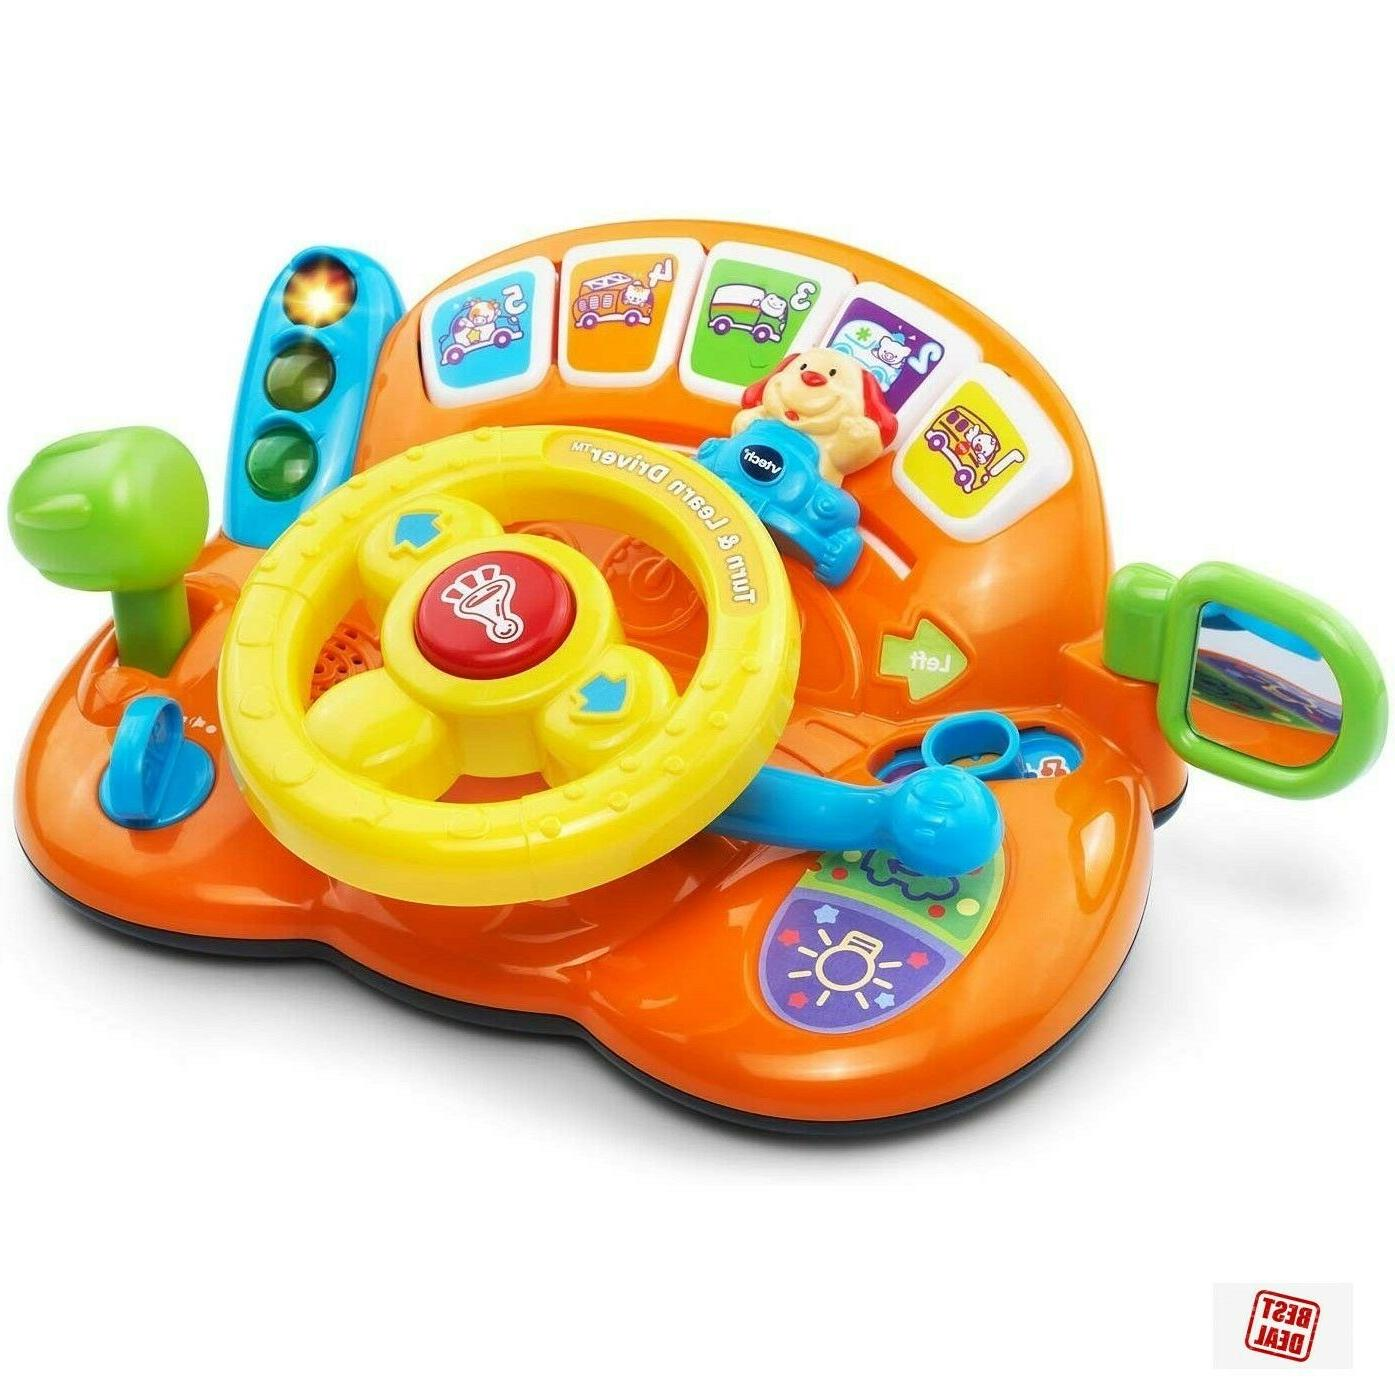 learning educational steering wheel toys for 1